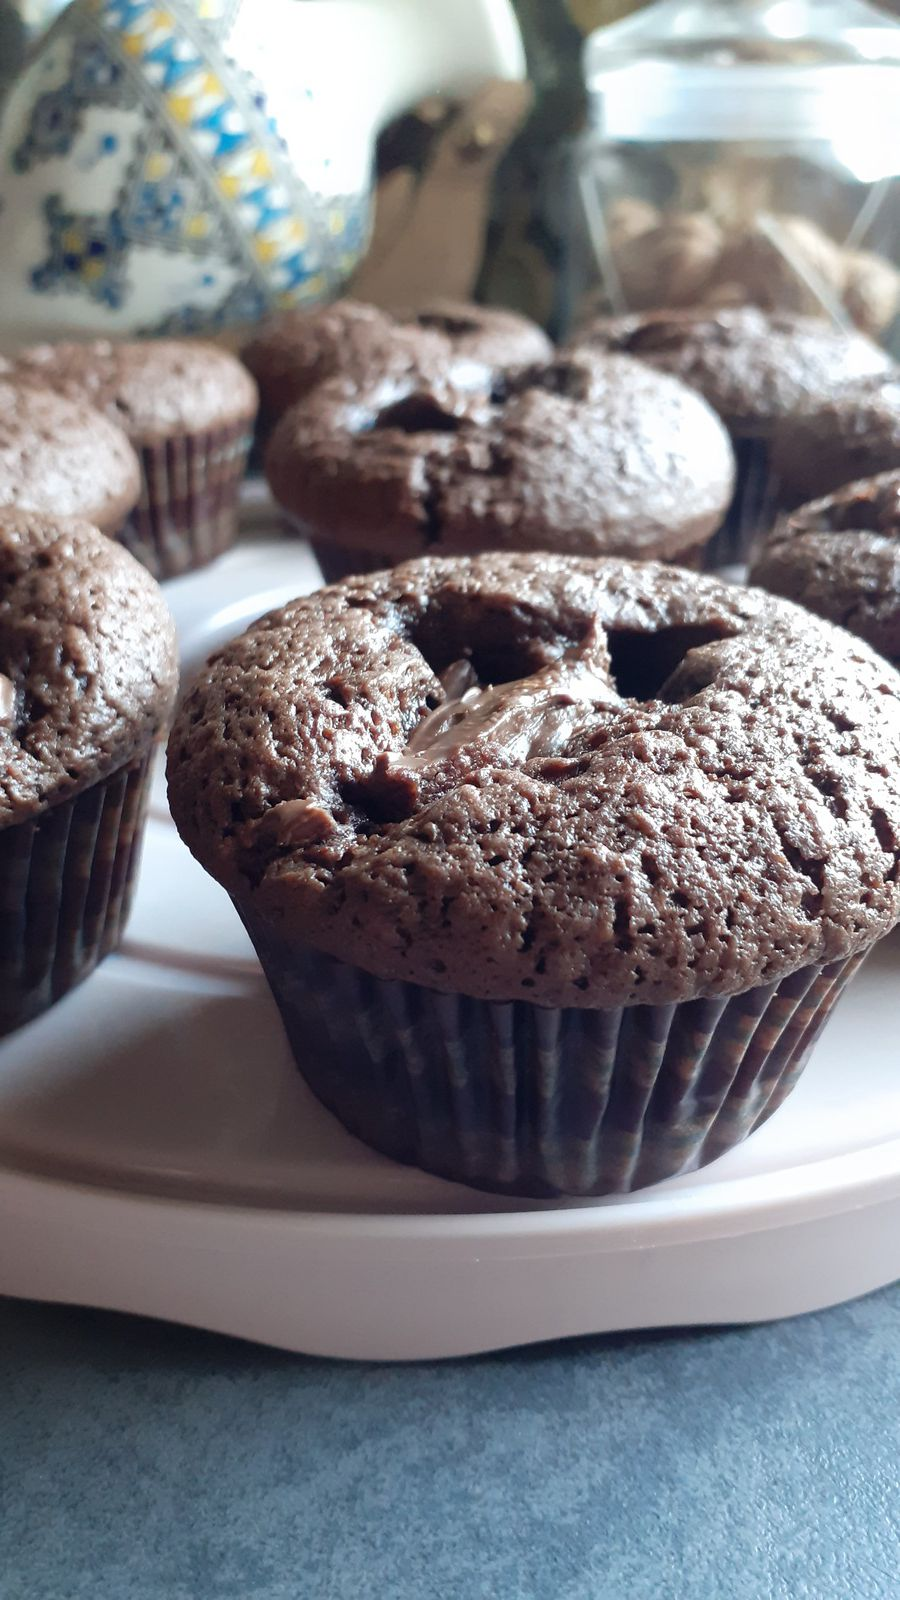 MUFFIN CHOCO/COCO et coeur coulant